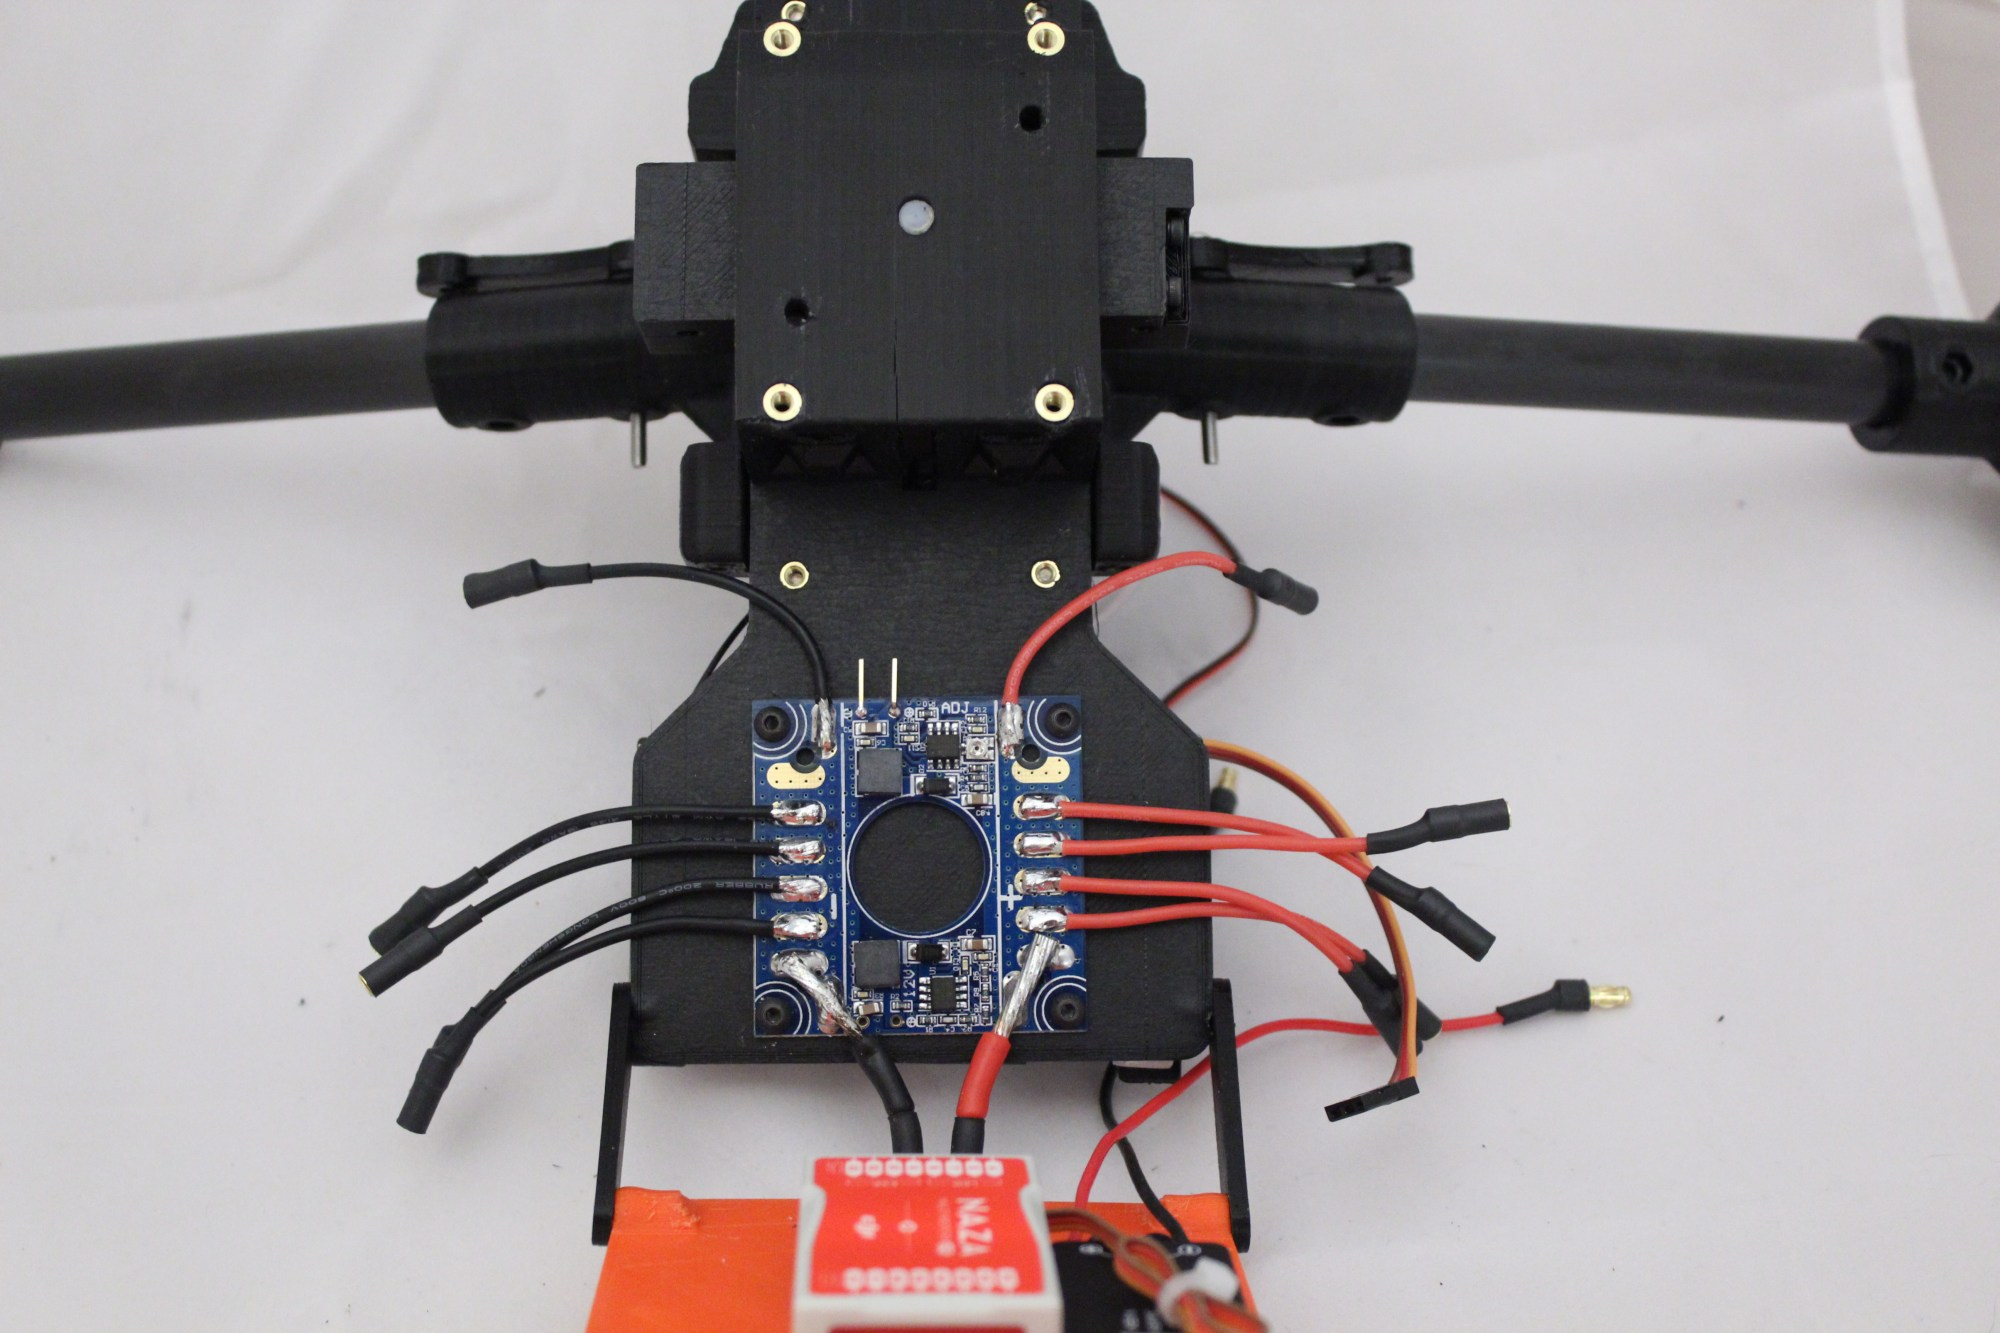 hight resolution of dji inspire wiring diagram wiring diagram advance 3d printed dji inspire clone build pictures and instructions